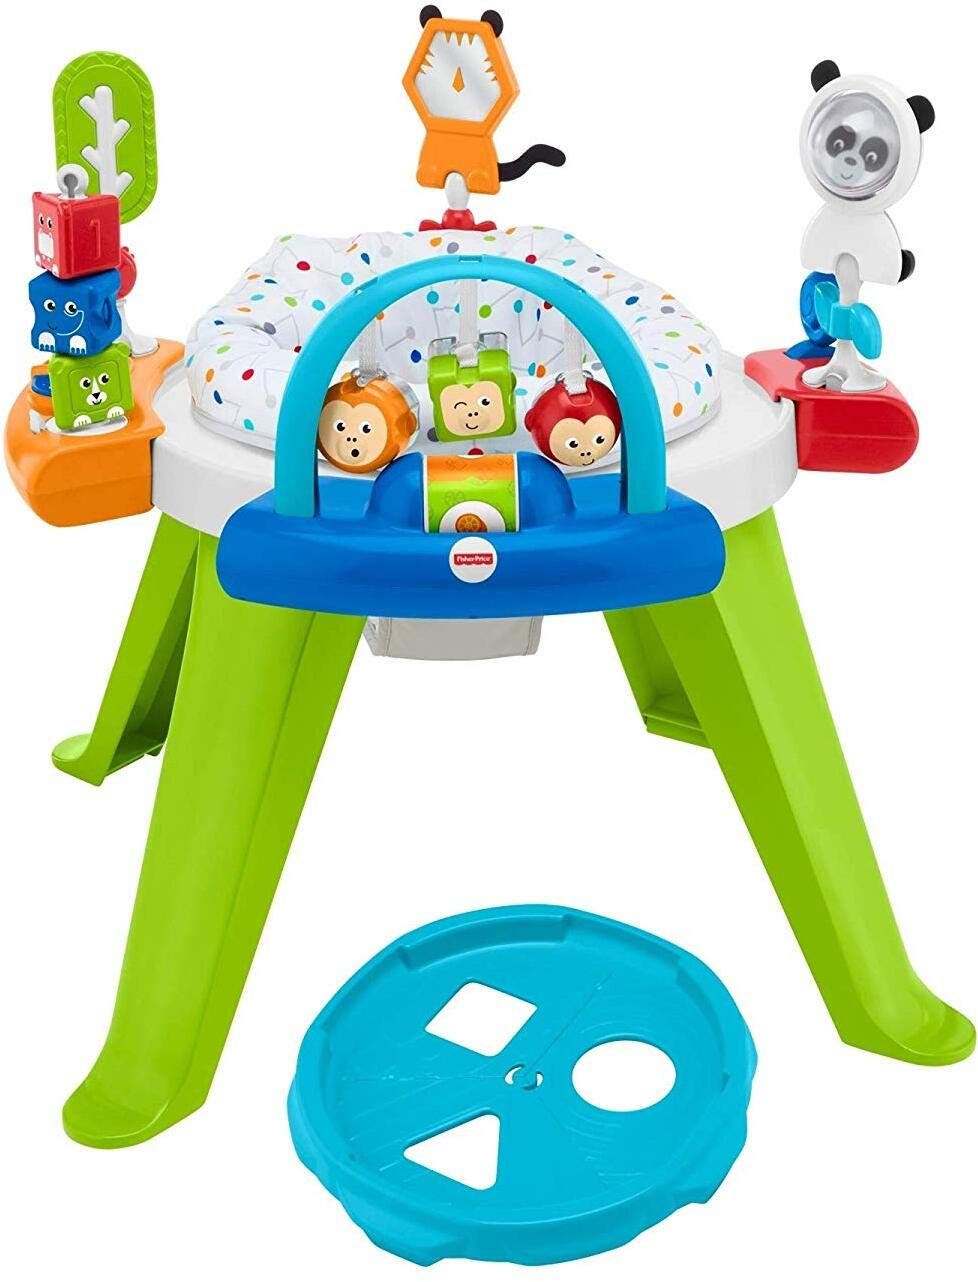 Fisher-Price 3-in-1 Spin /& Sort Activity Center